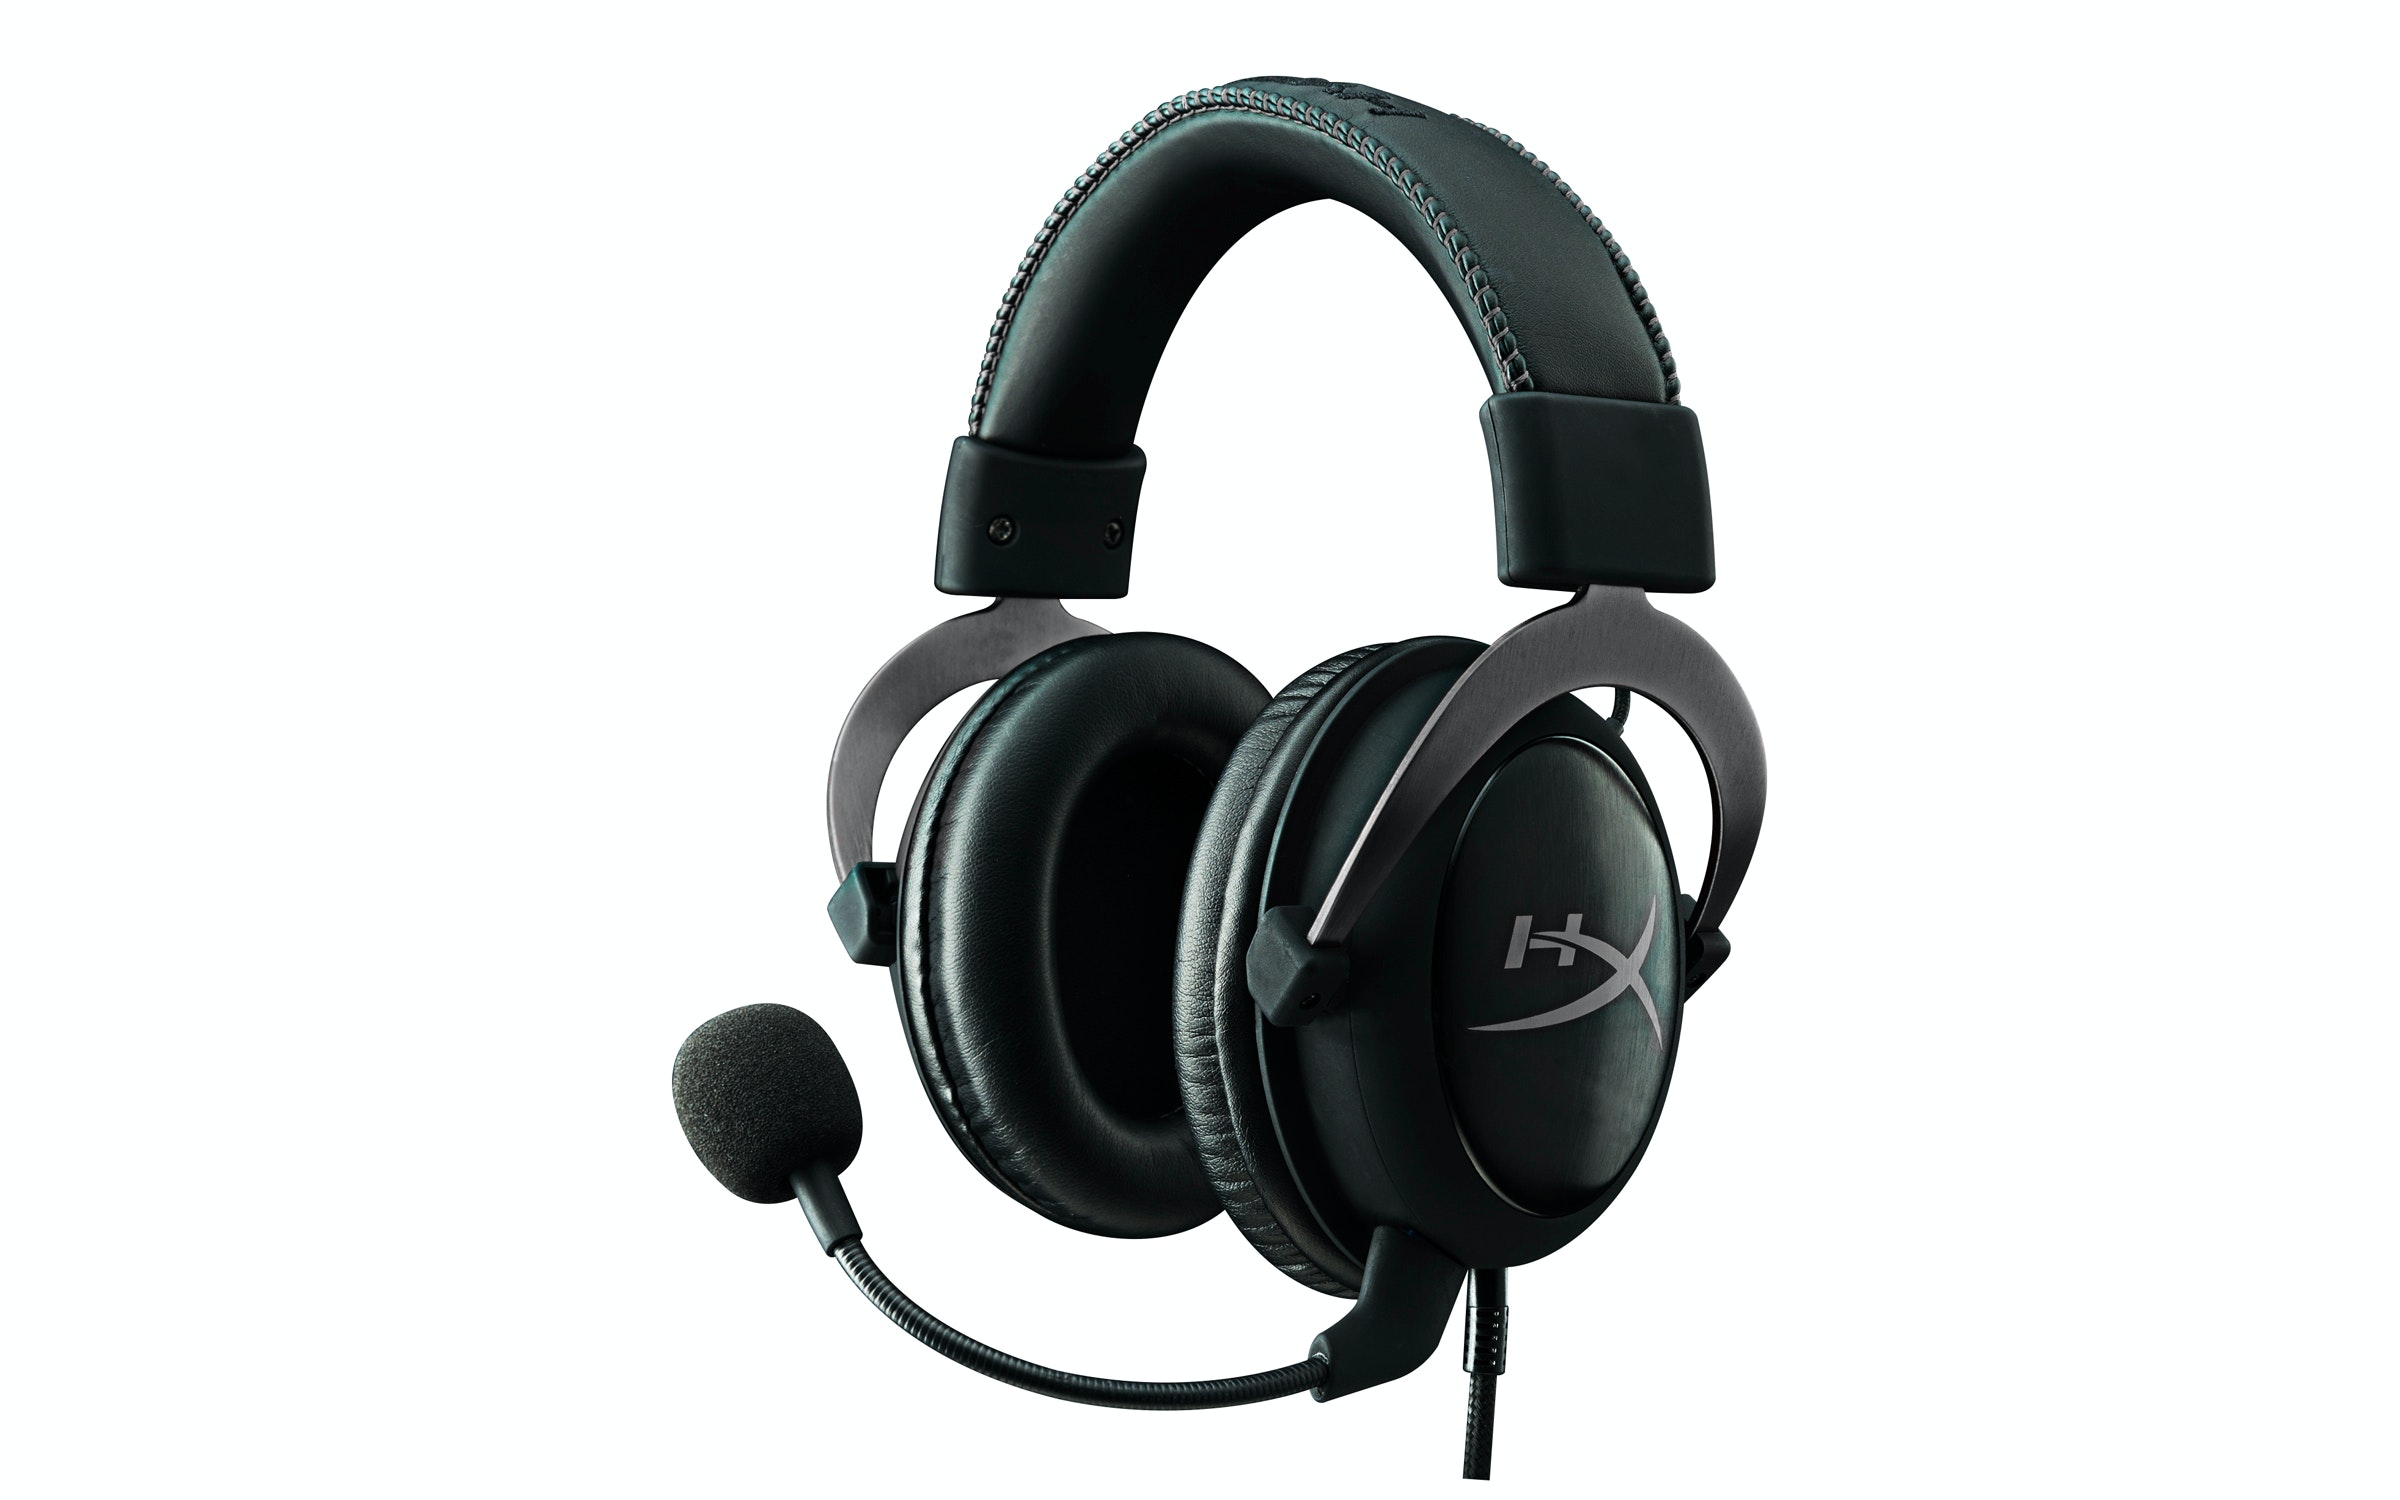 Cloud II - Noise Cancelling Gaming Headset | HyperX